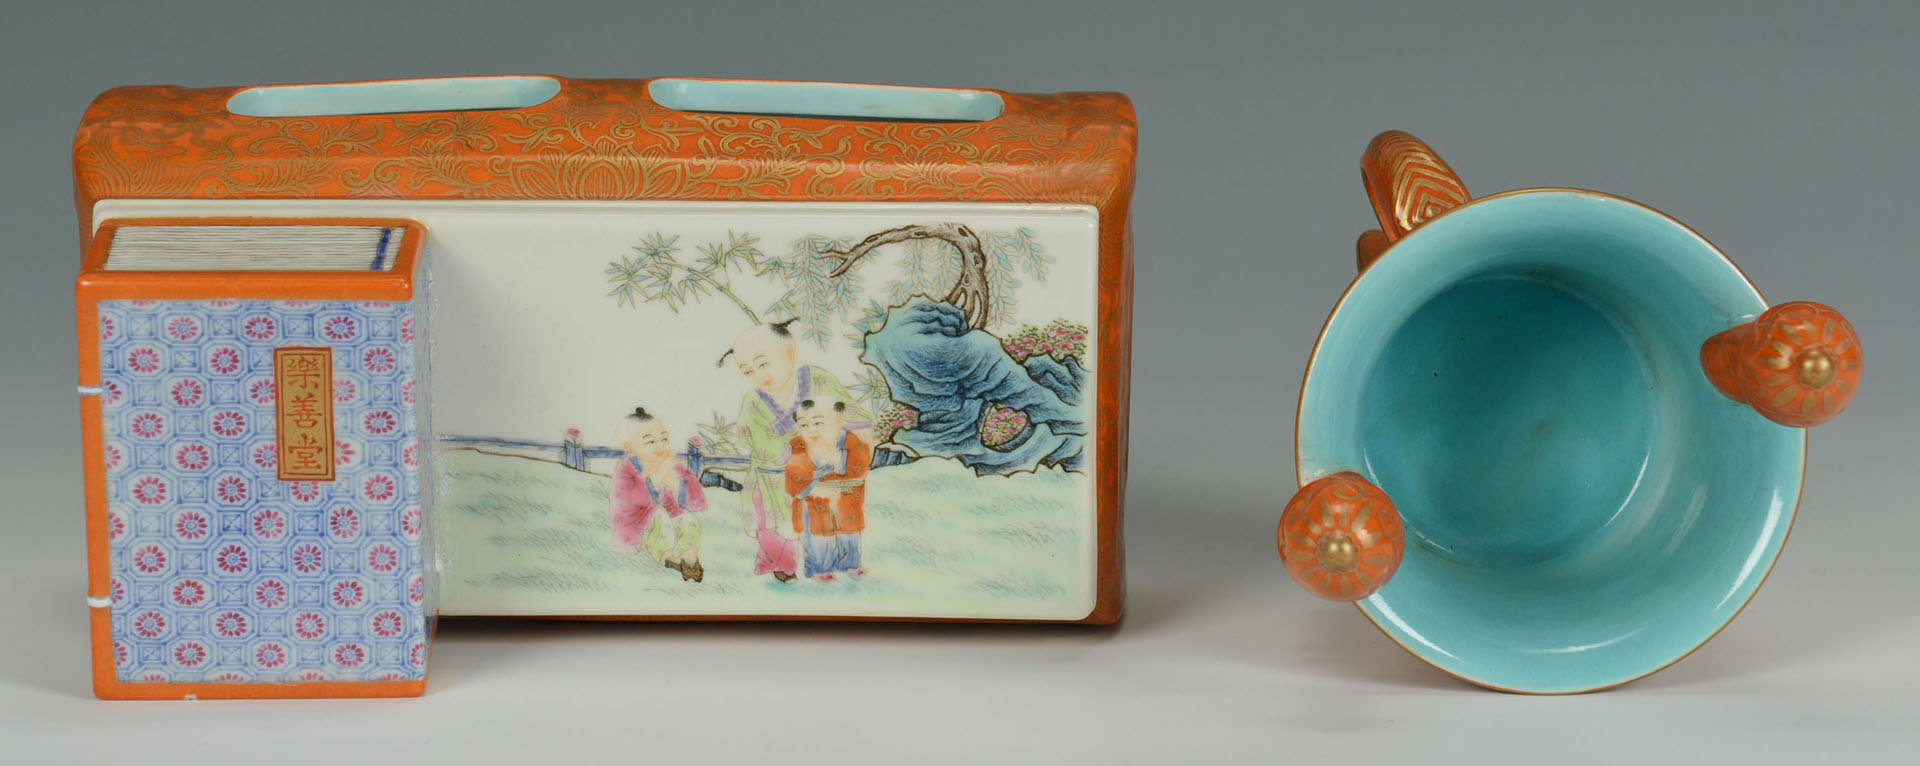 Lot 454: 2 Chinese Porcelain Items, Box & Tripod Cup